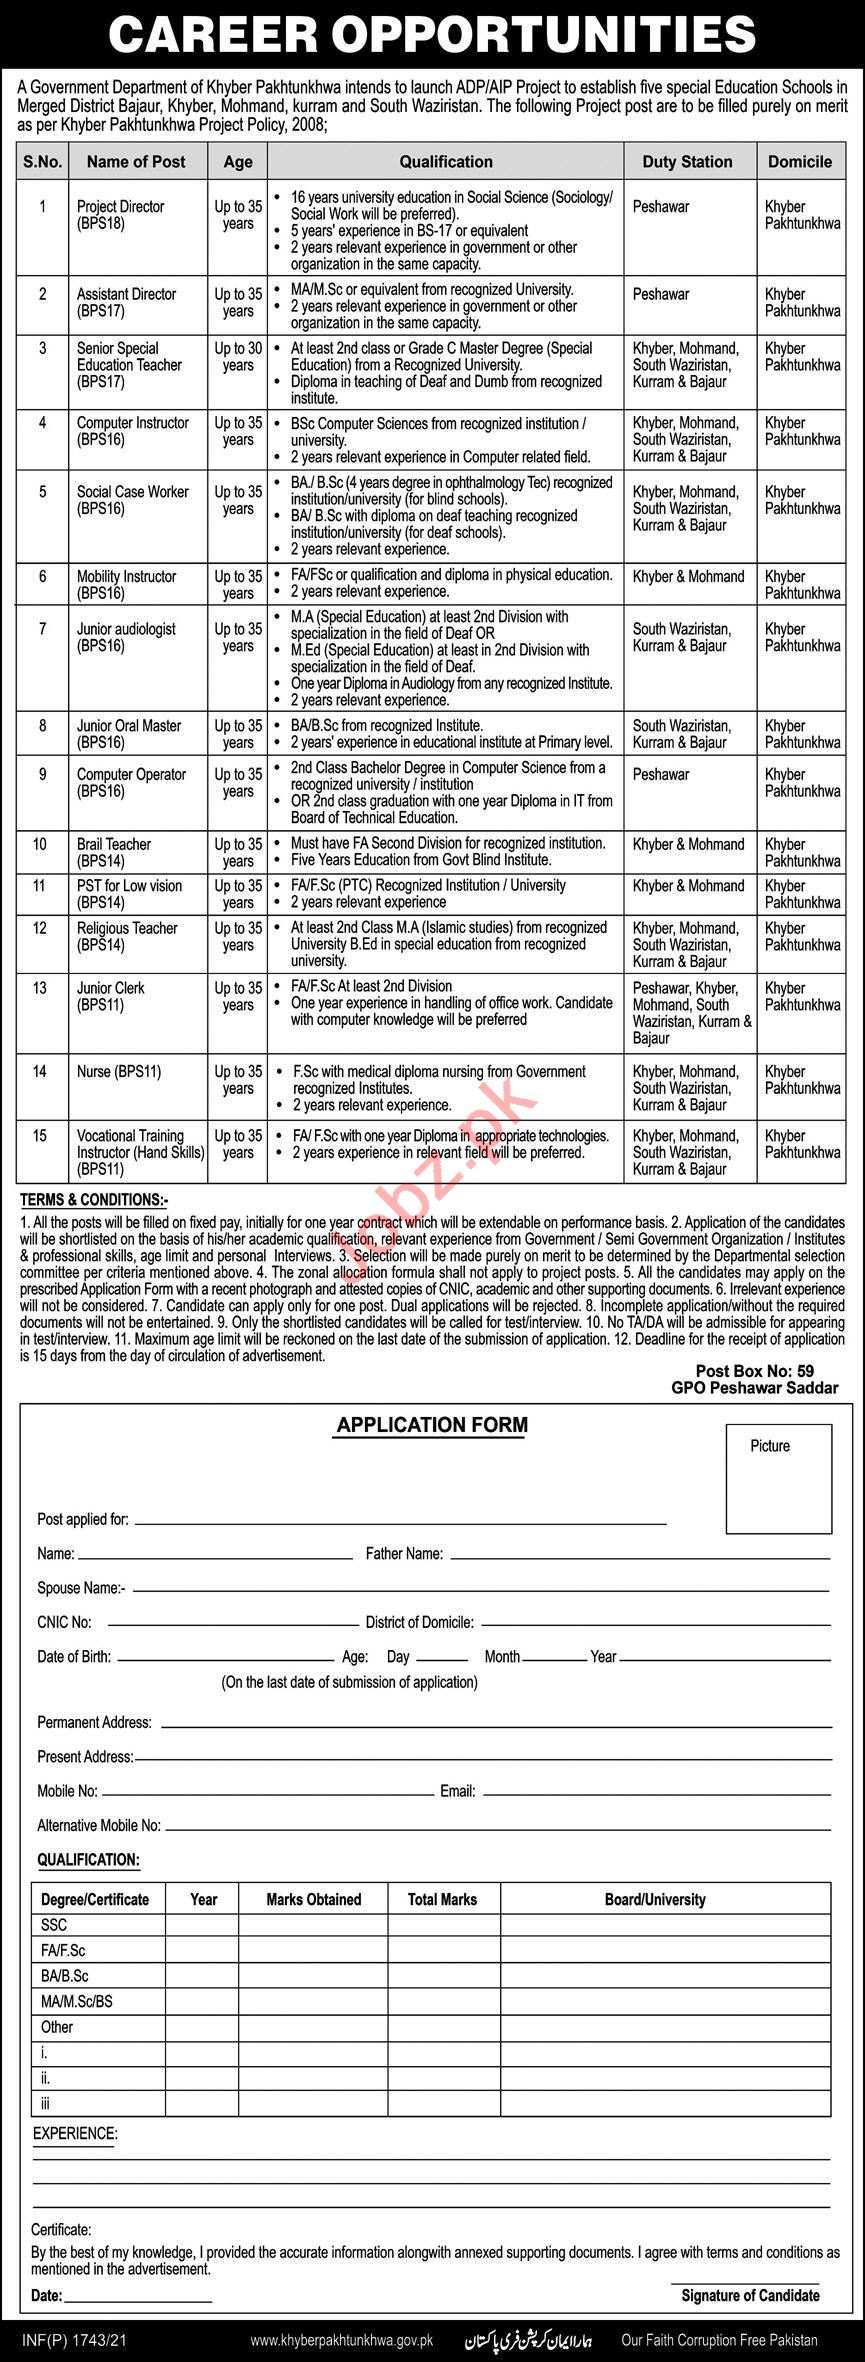 Post Box No 59 GPO Peshawar Jobs 2021 for Project Director